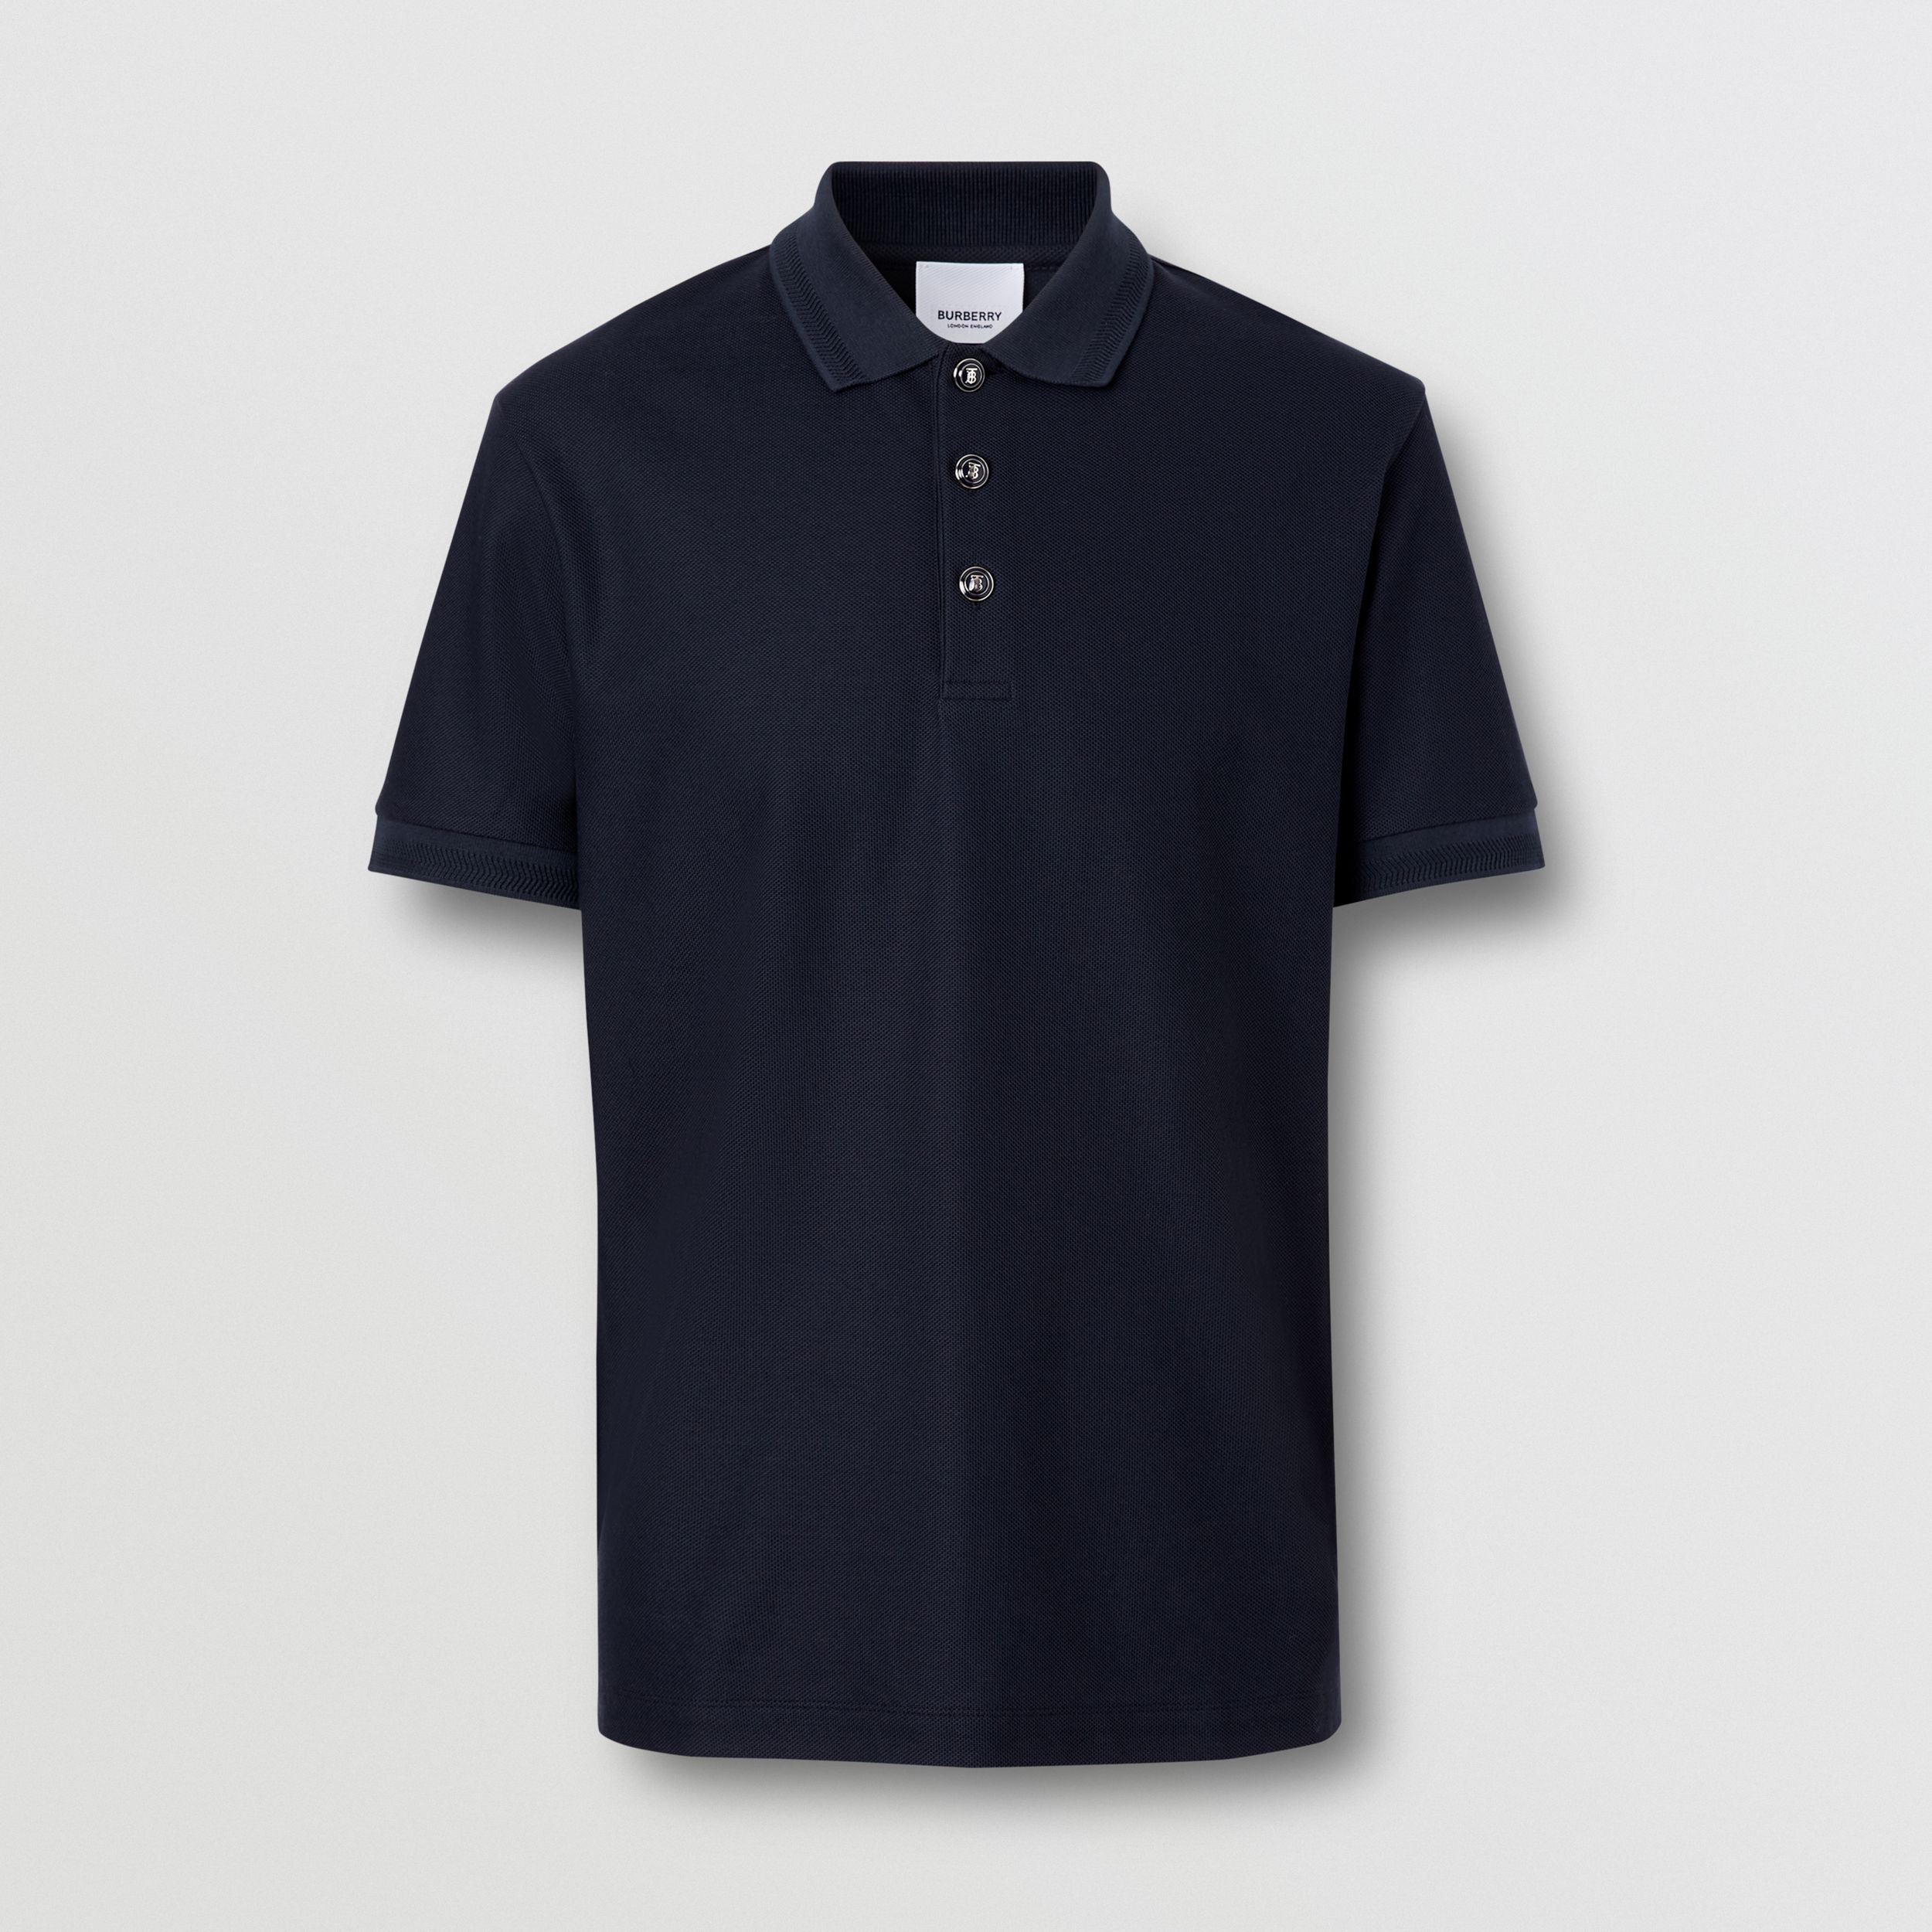 Cotton Piqué Polo Shirt in Navy - Men | Burberry - 4